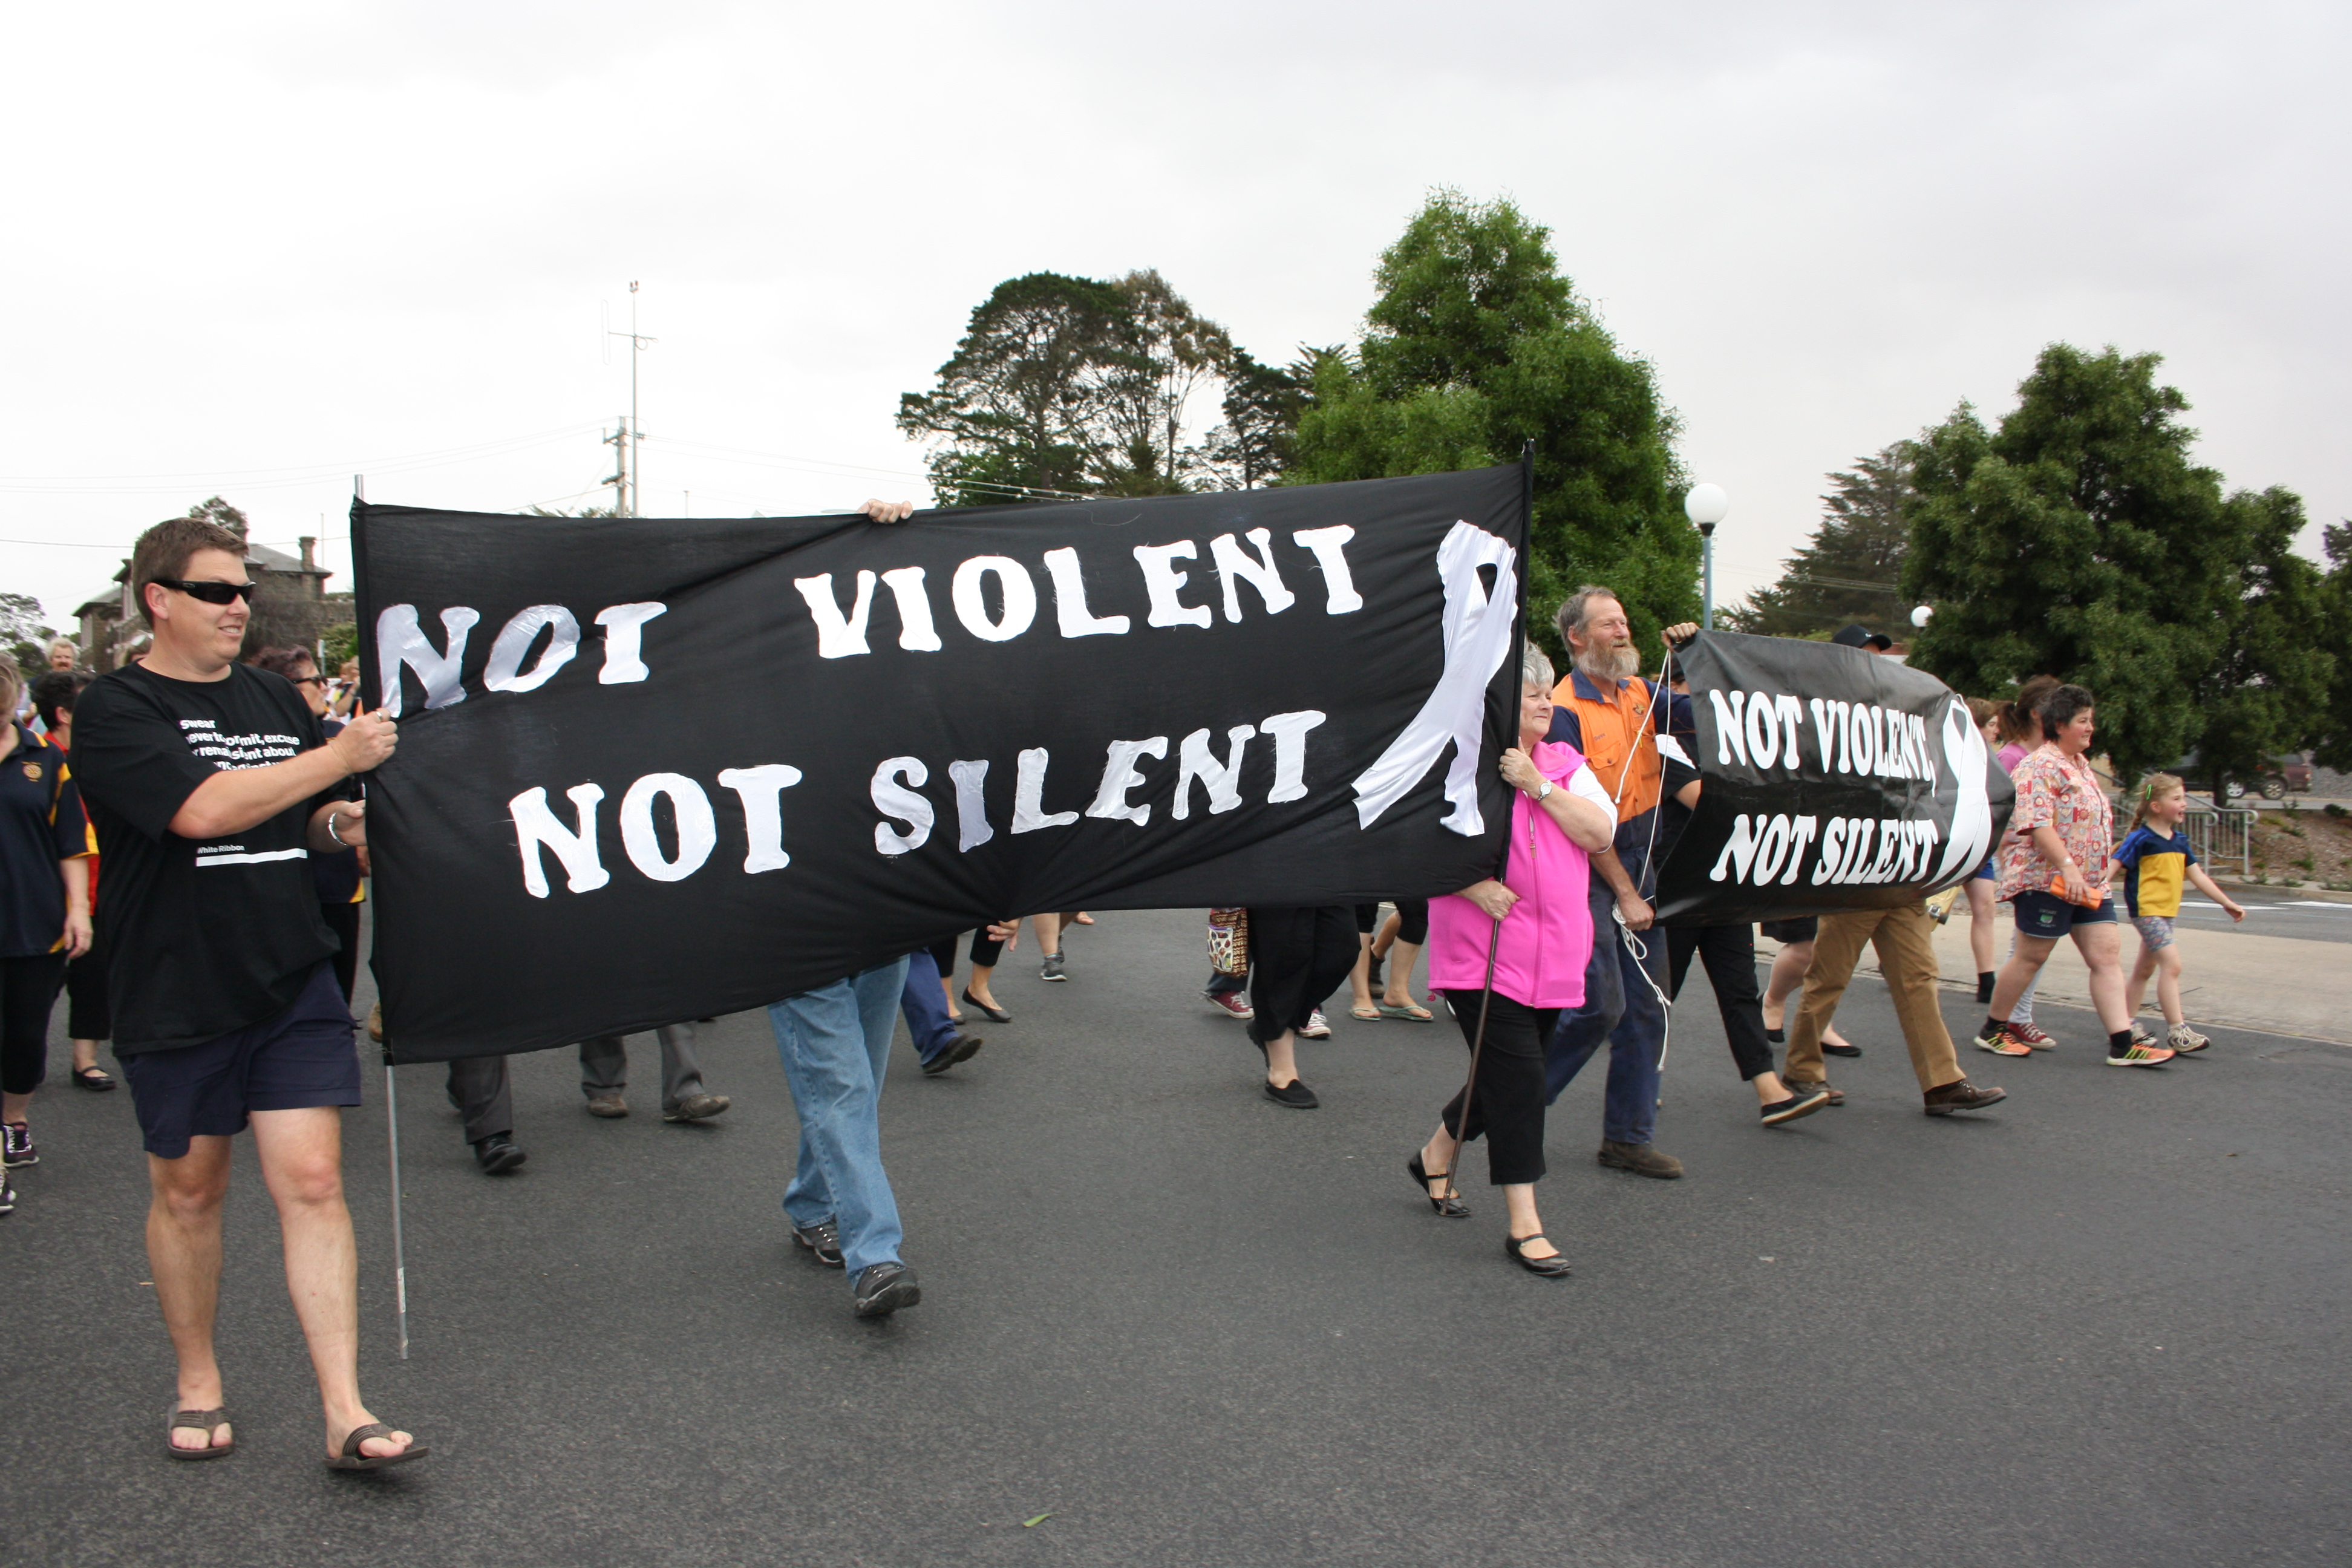 Ararat Rural City again says no to family violence